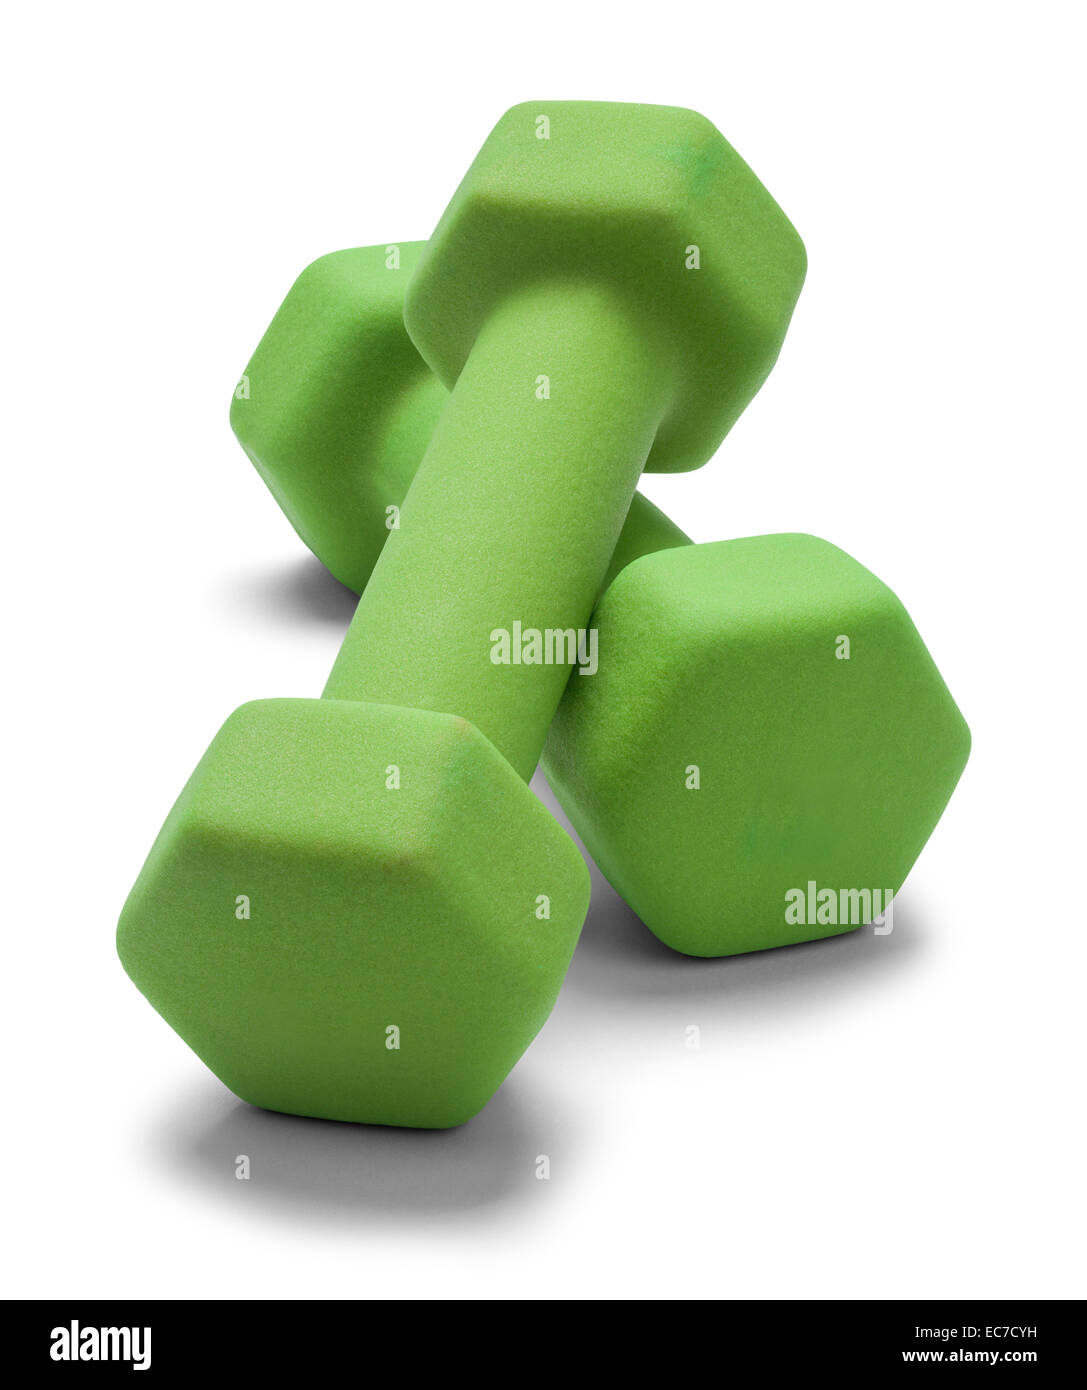 Green Work Out Weights Isolated on White Background. - Stock Image